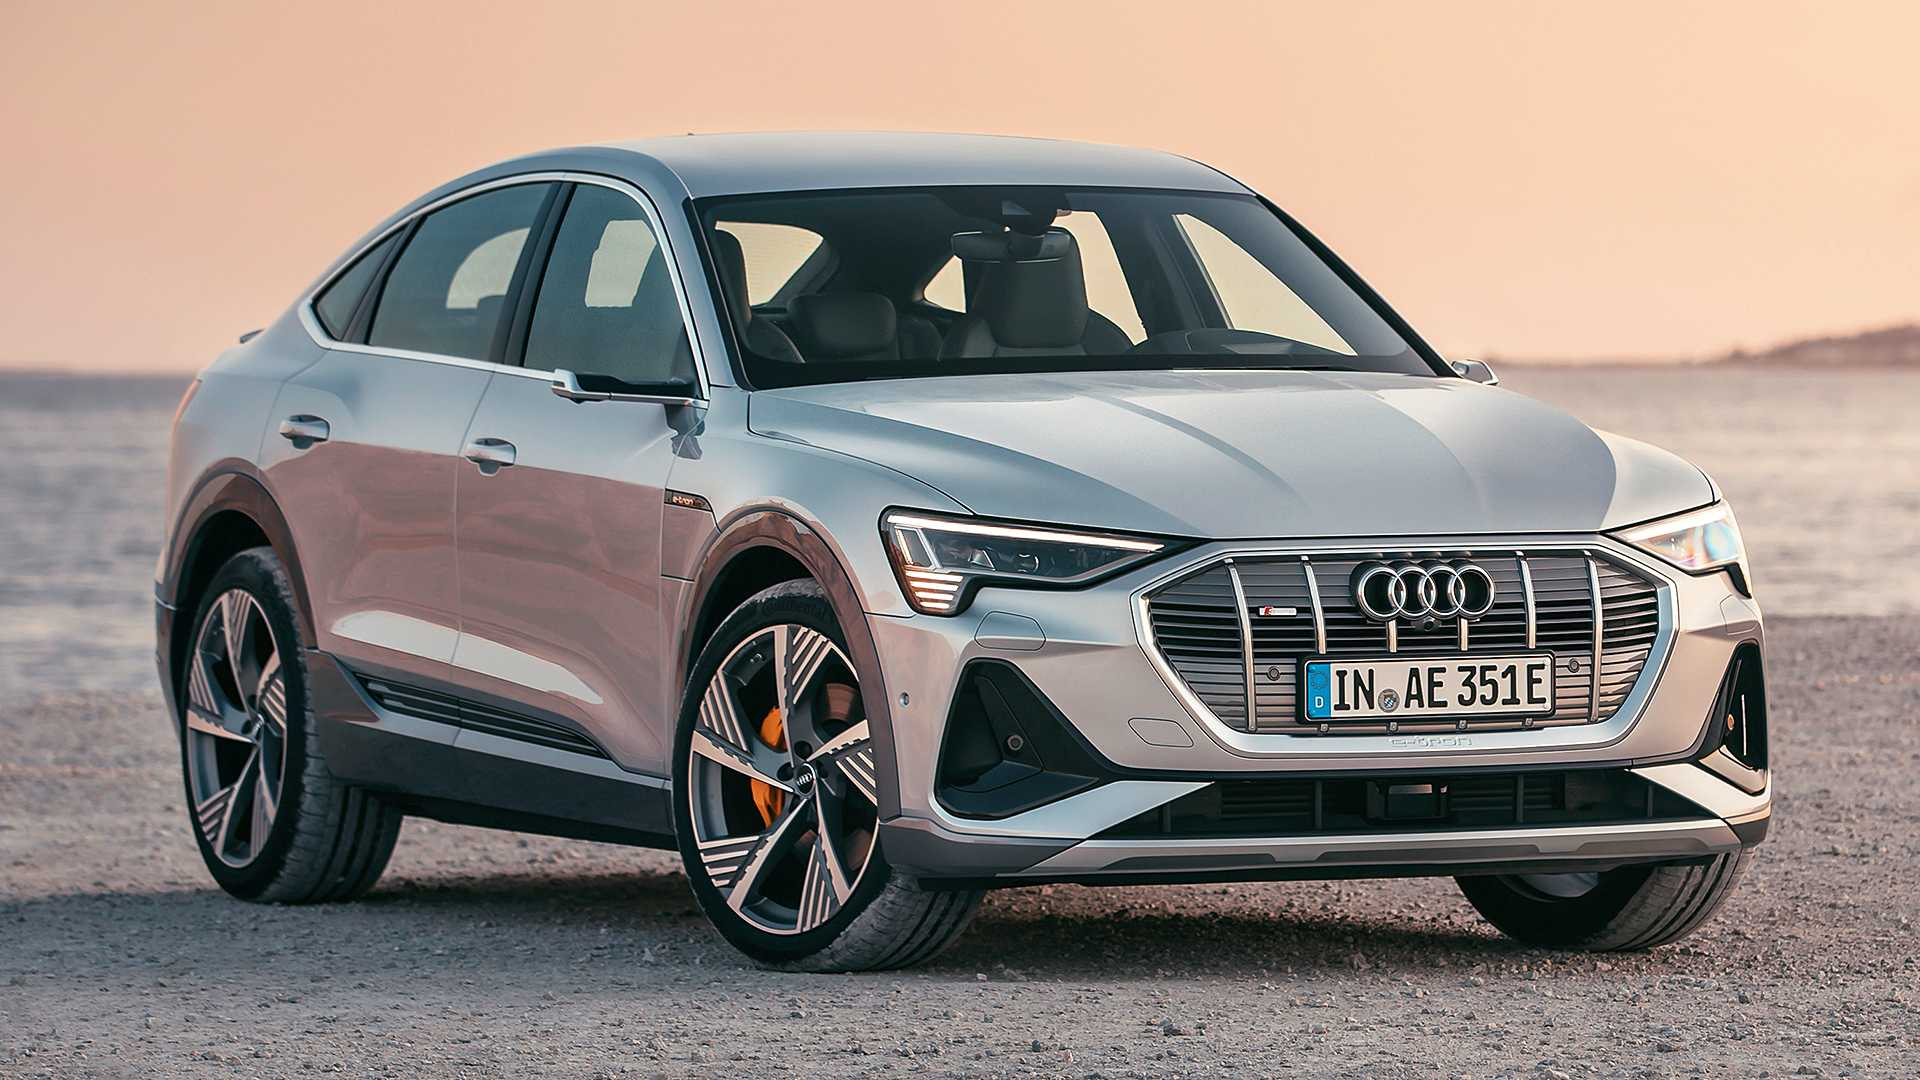 Audi E-Tron Sportback debuts smooth shape and sci-fi headlights